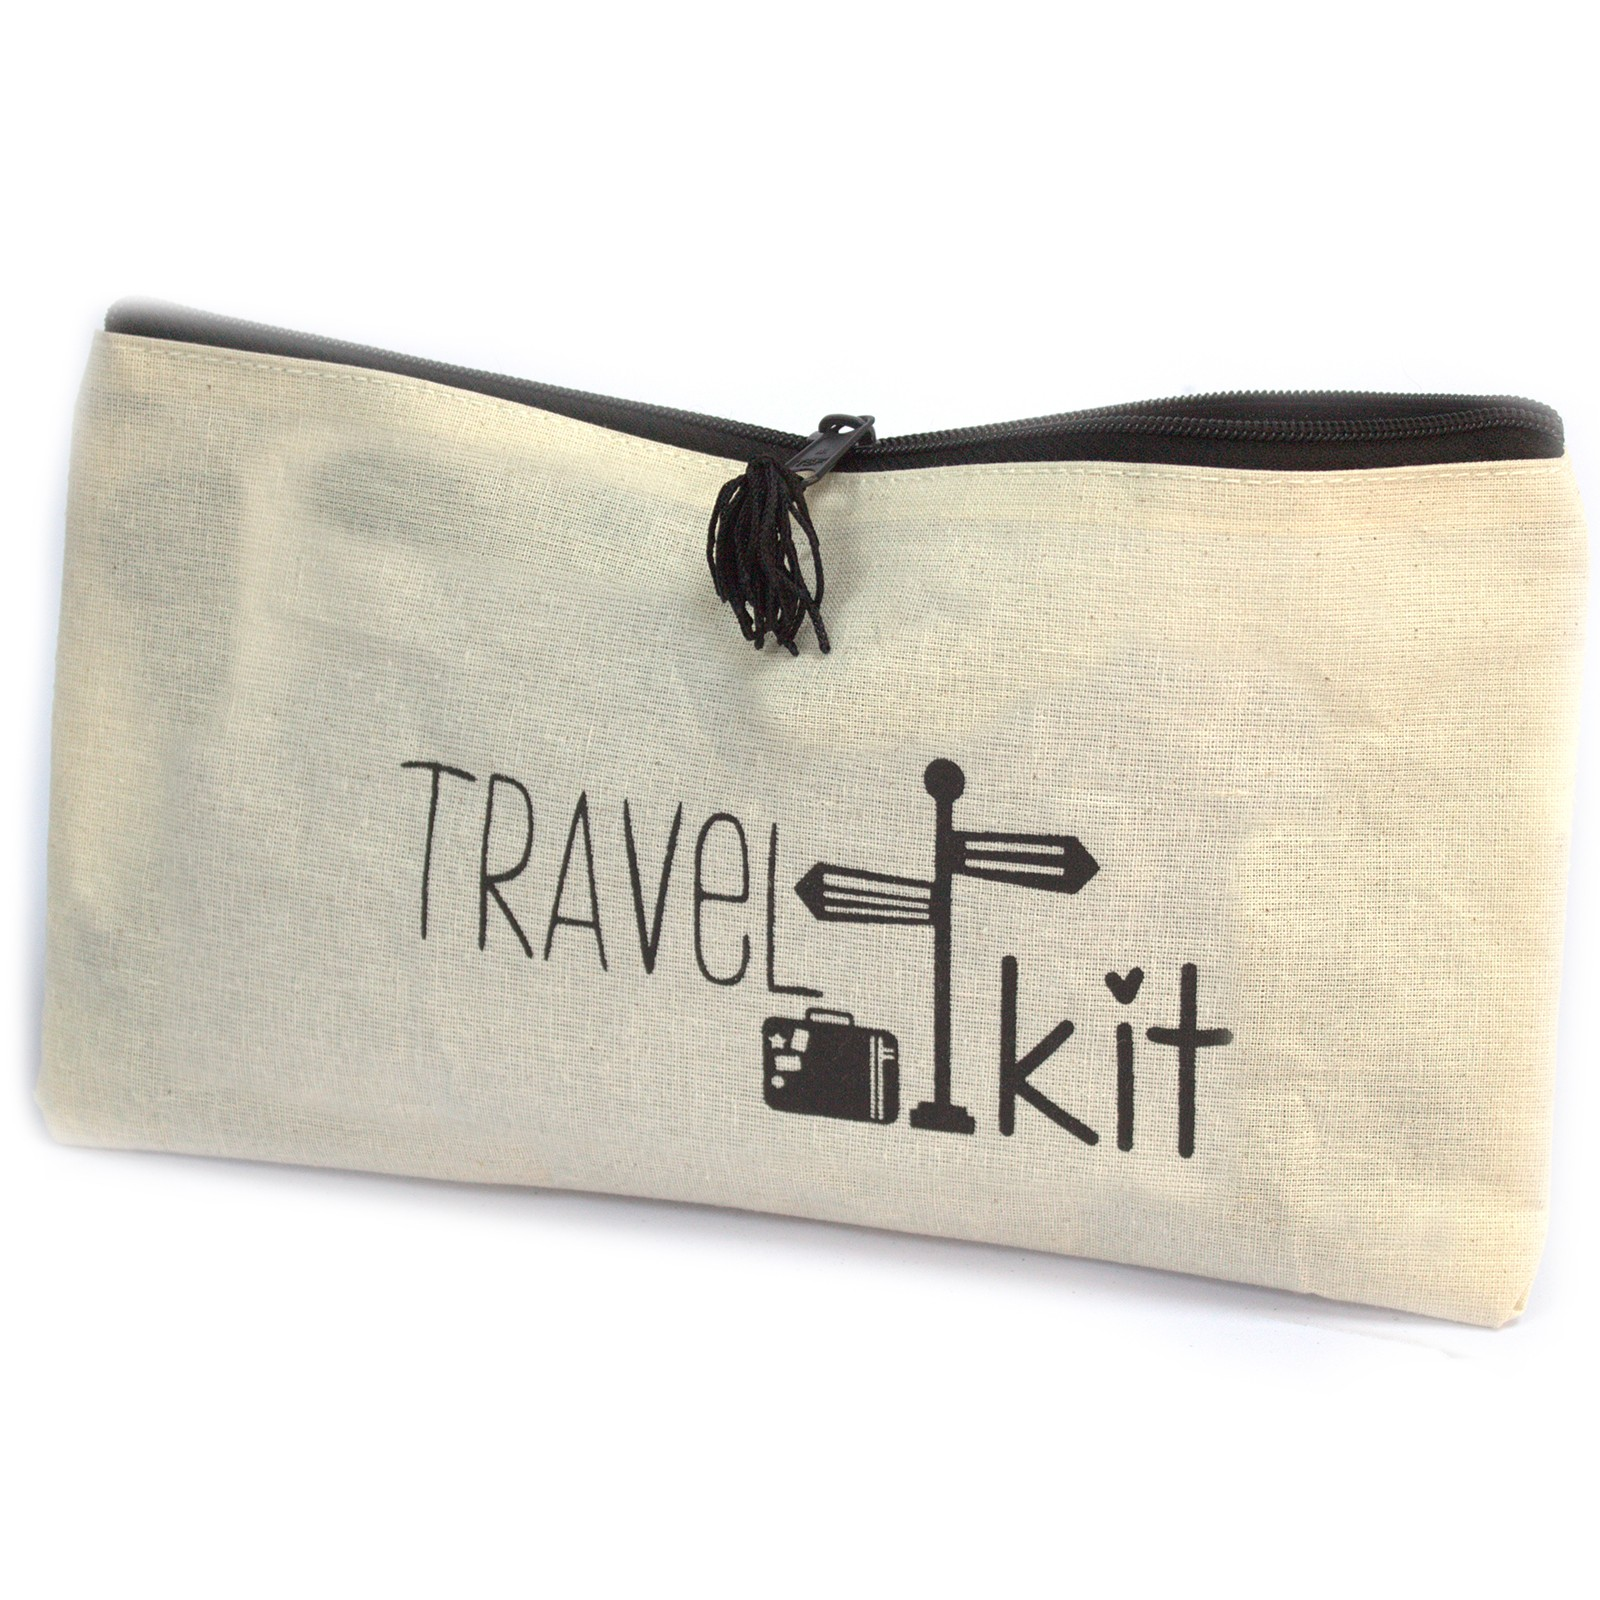 Get Organised Pouch Travel Kit